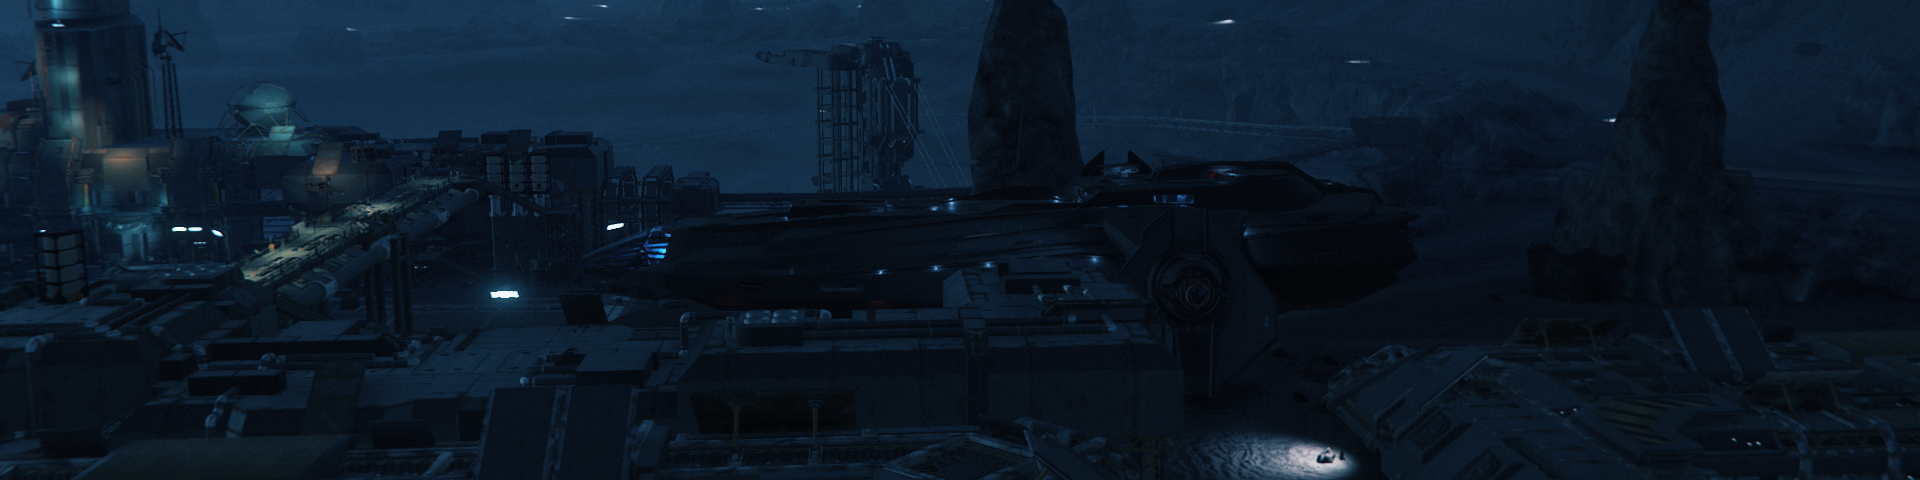 Portside view of a space frigate landed at a mining facility on a dark world.